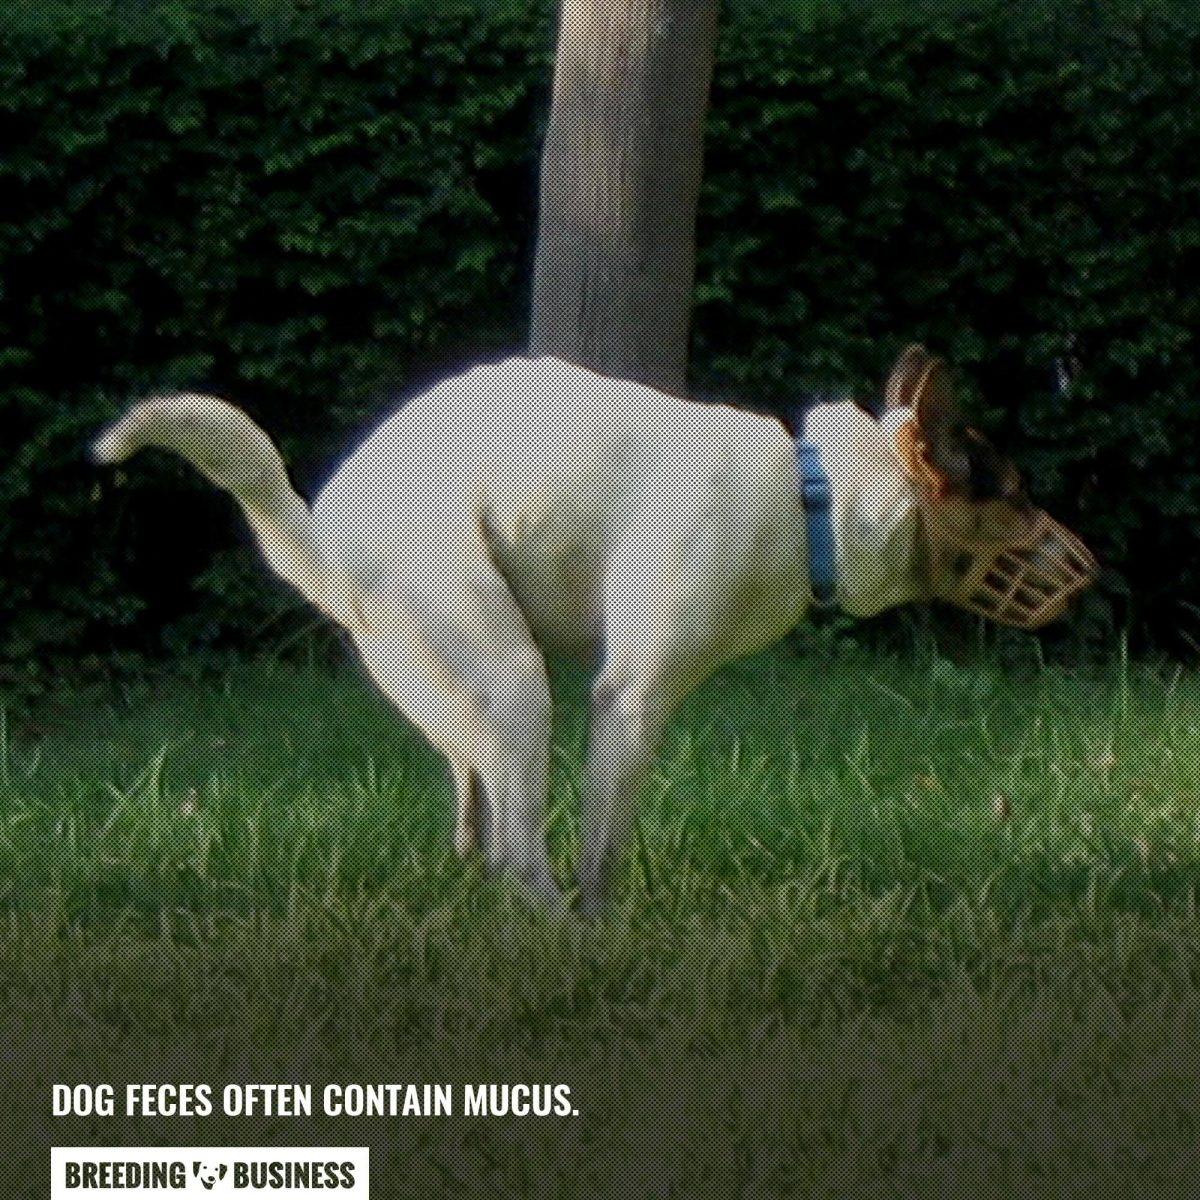 mucus in dog feces